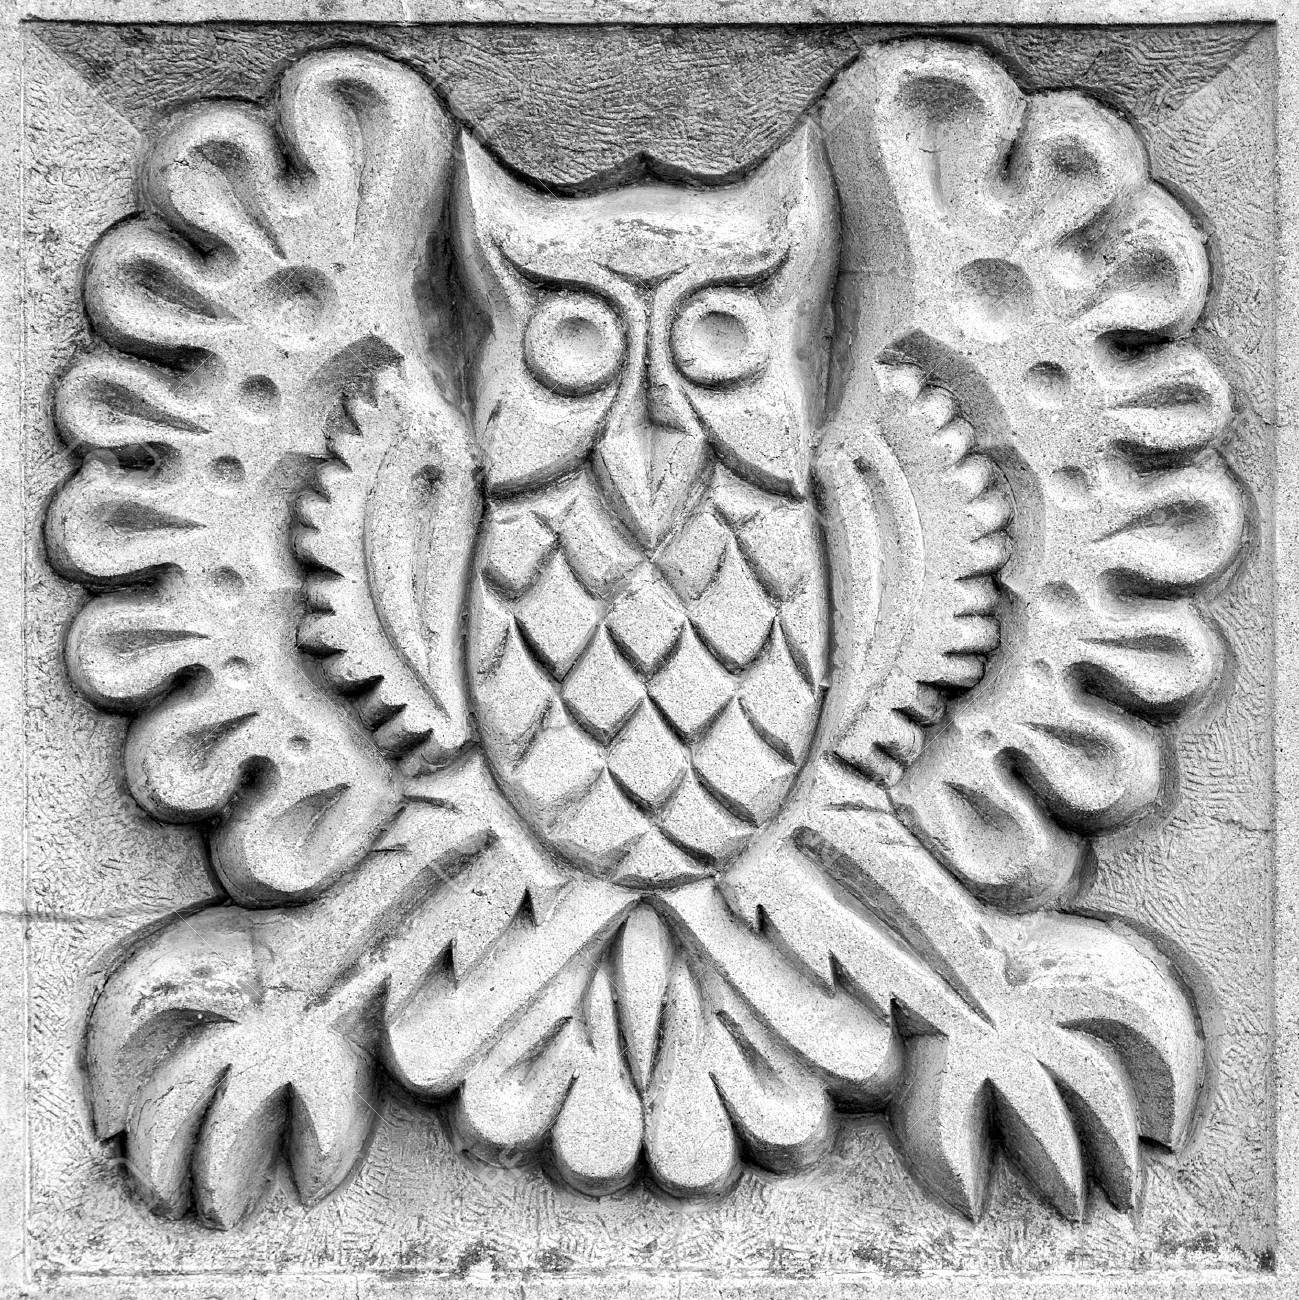 A small stone owl meets the wishes of a french town aleph